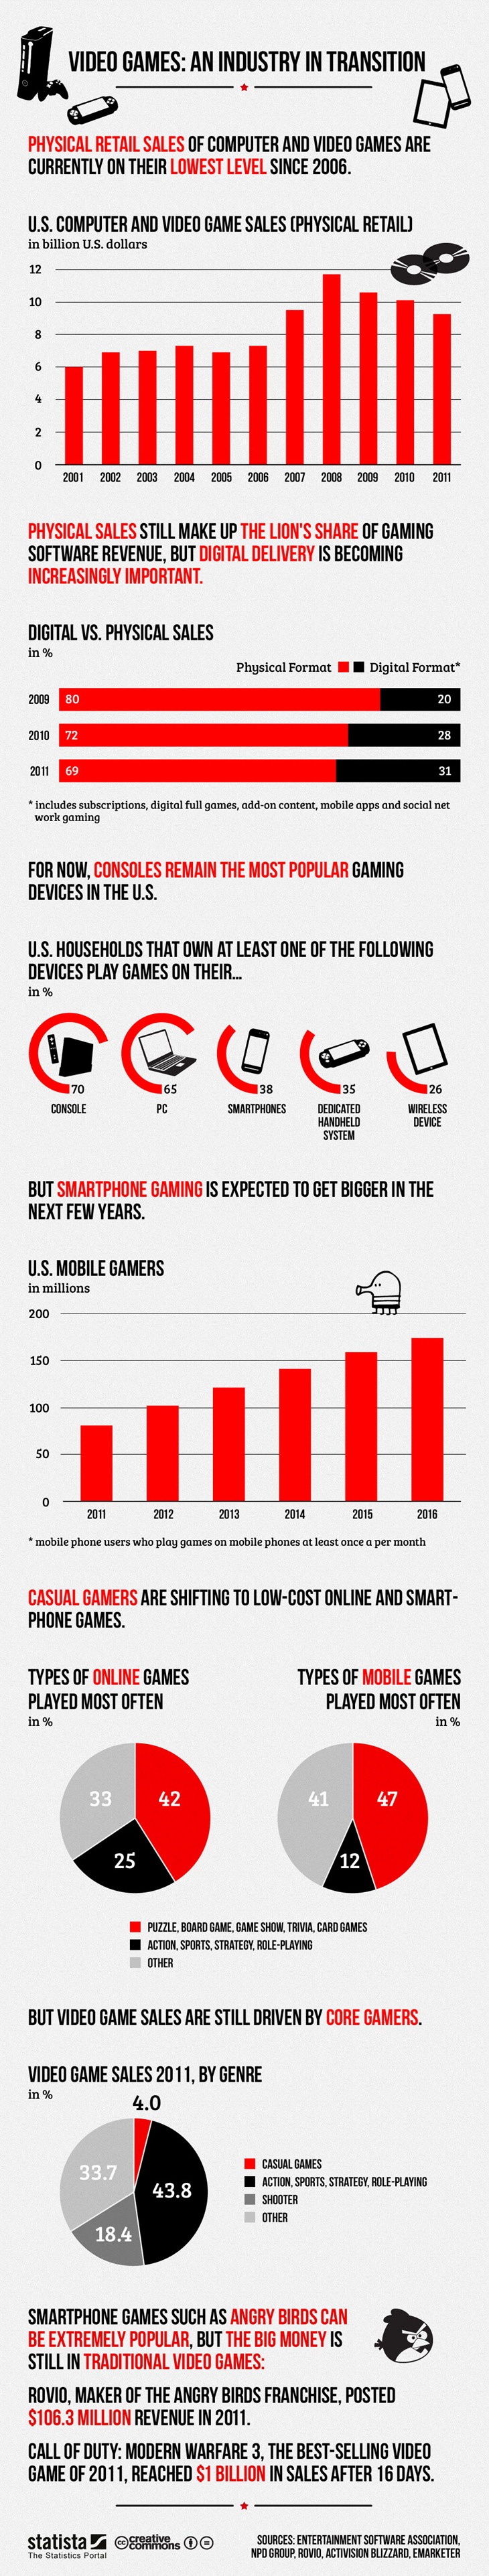 Video-Games-Industry-In-Trasition-infographic